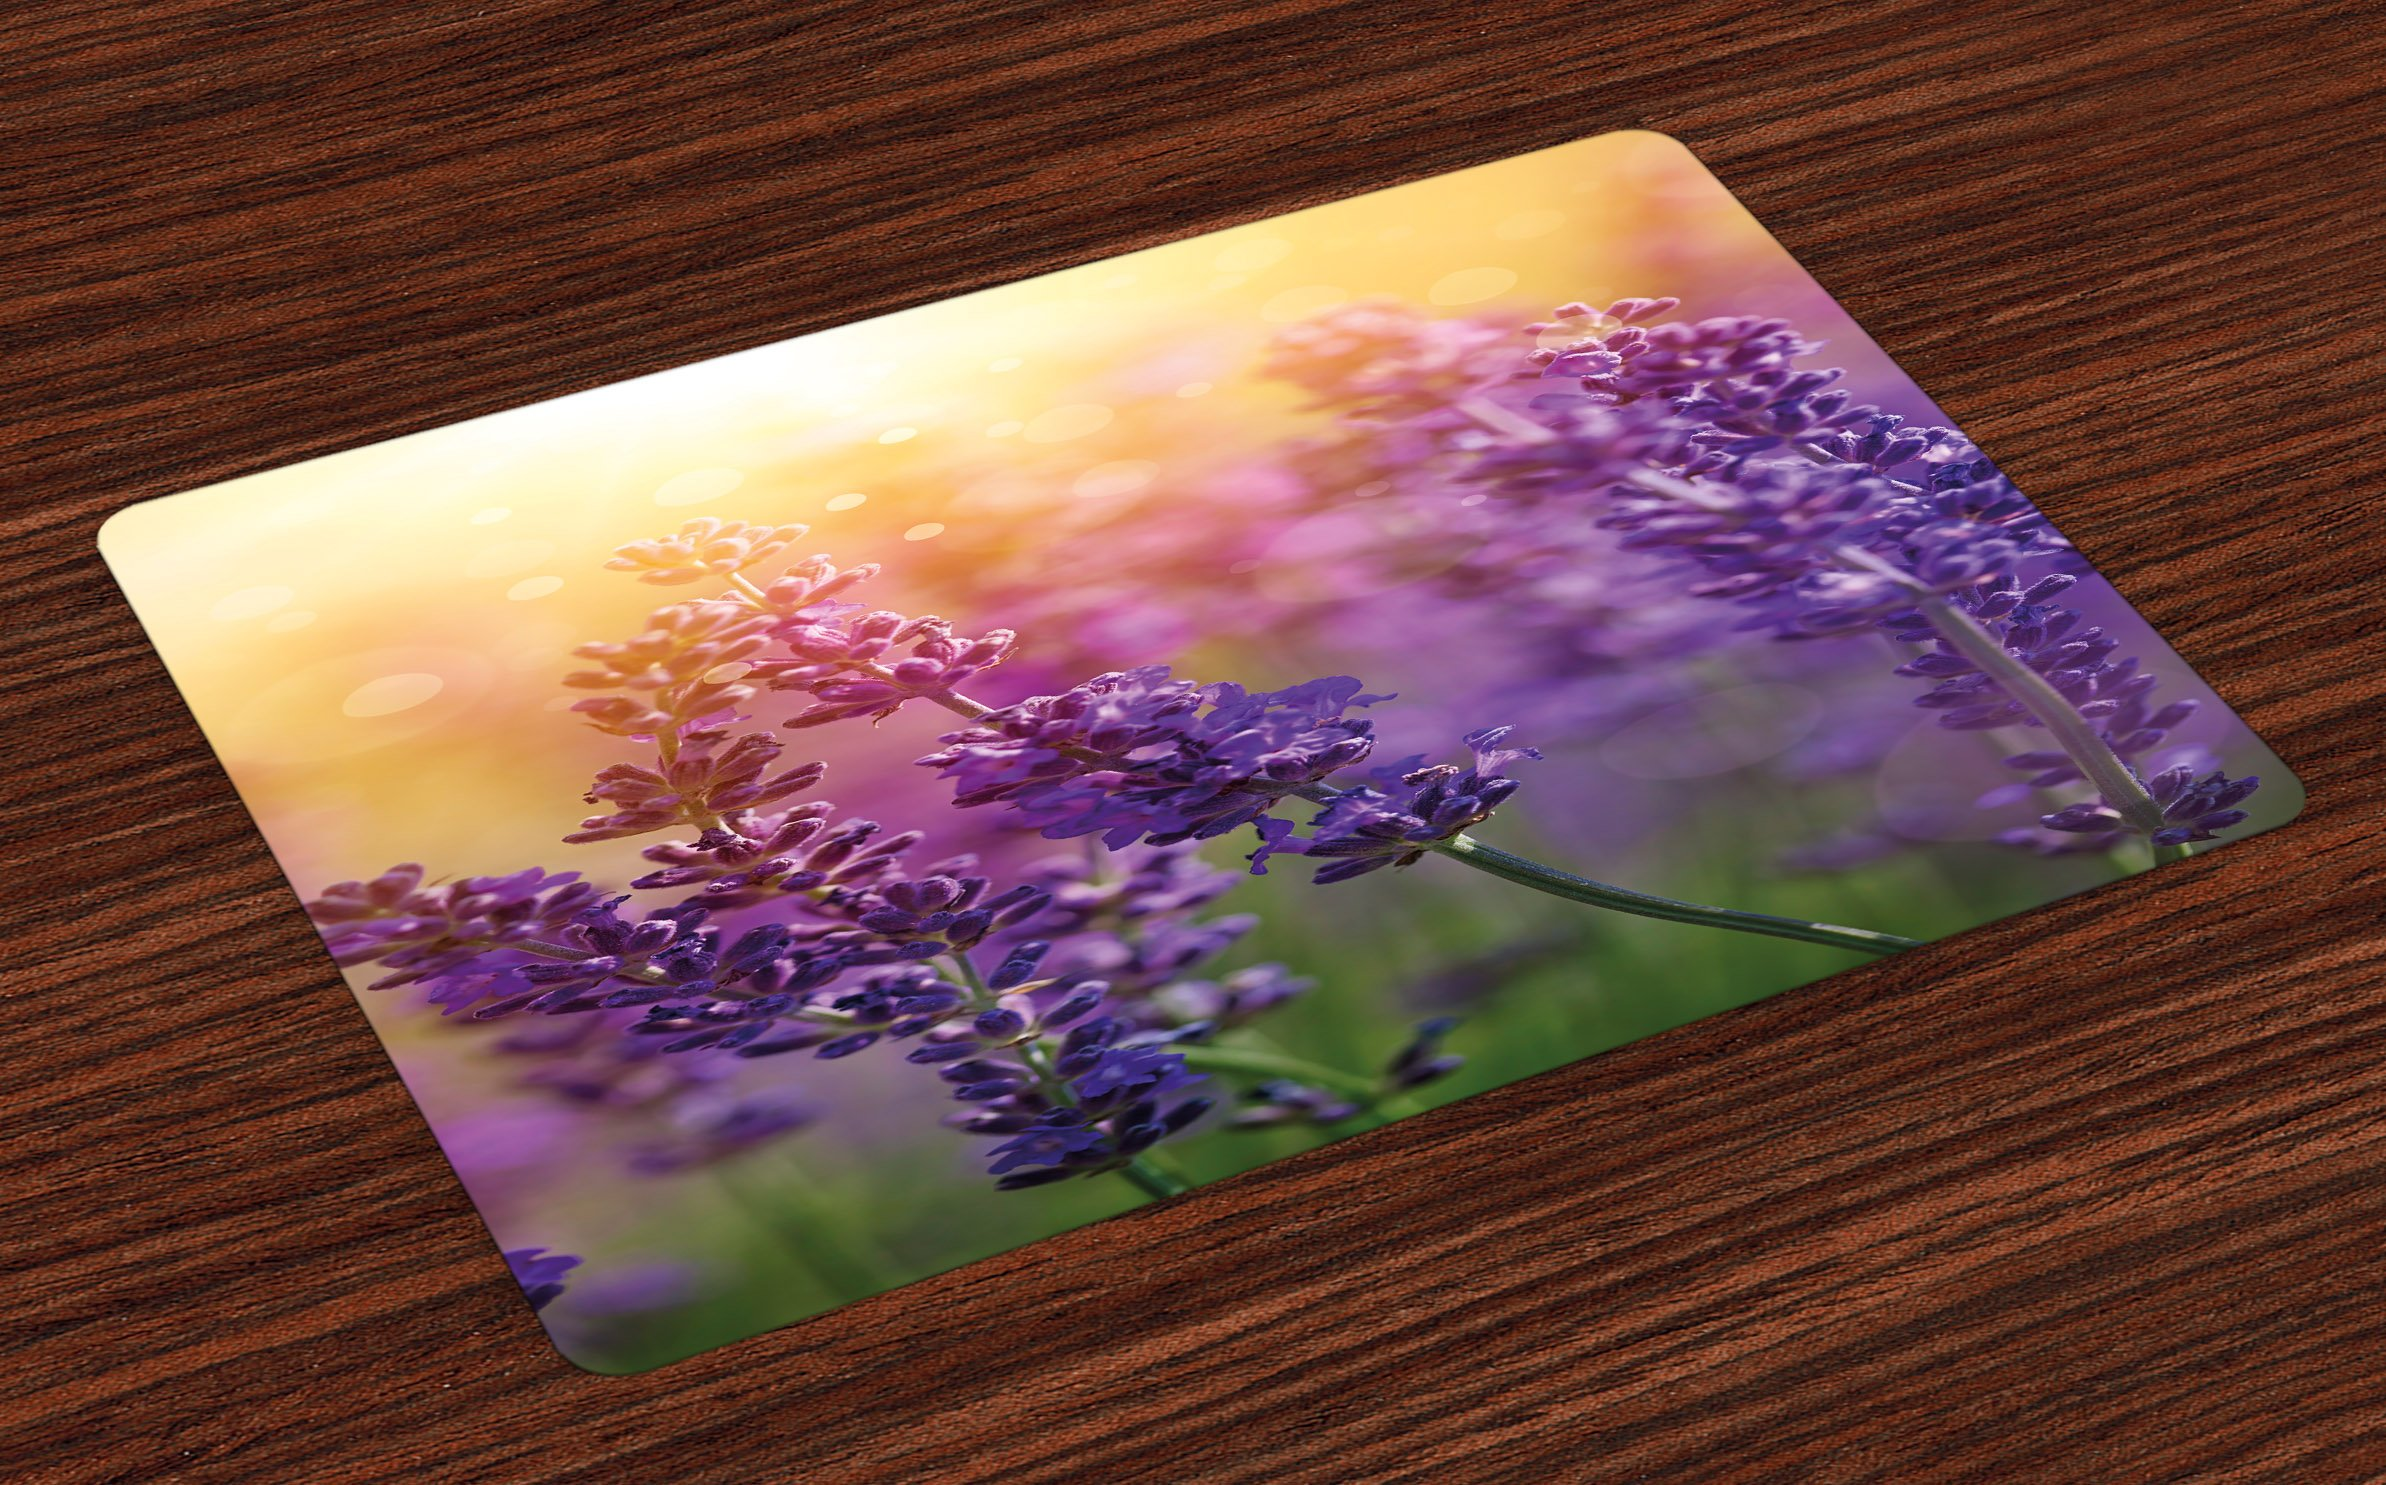 Lunarable Lavender Place Mats Set of 4, Detail of Scenic Gardening Plants Flourishing in Springtime Fresh Woods, Washable Fabric Placemats for Dining Room Kitchen Table Decor, Violet Apricot Green